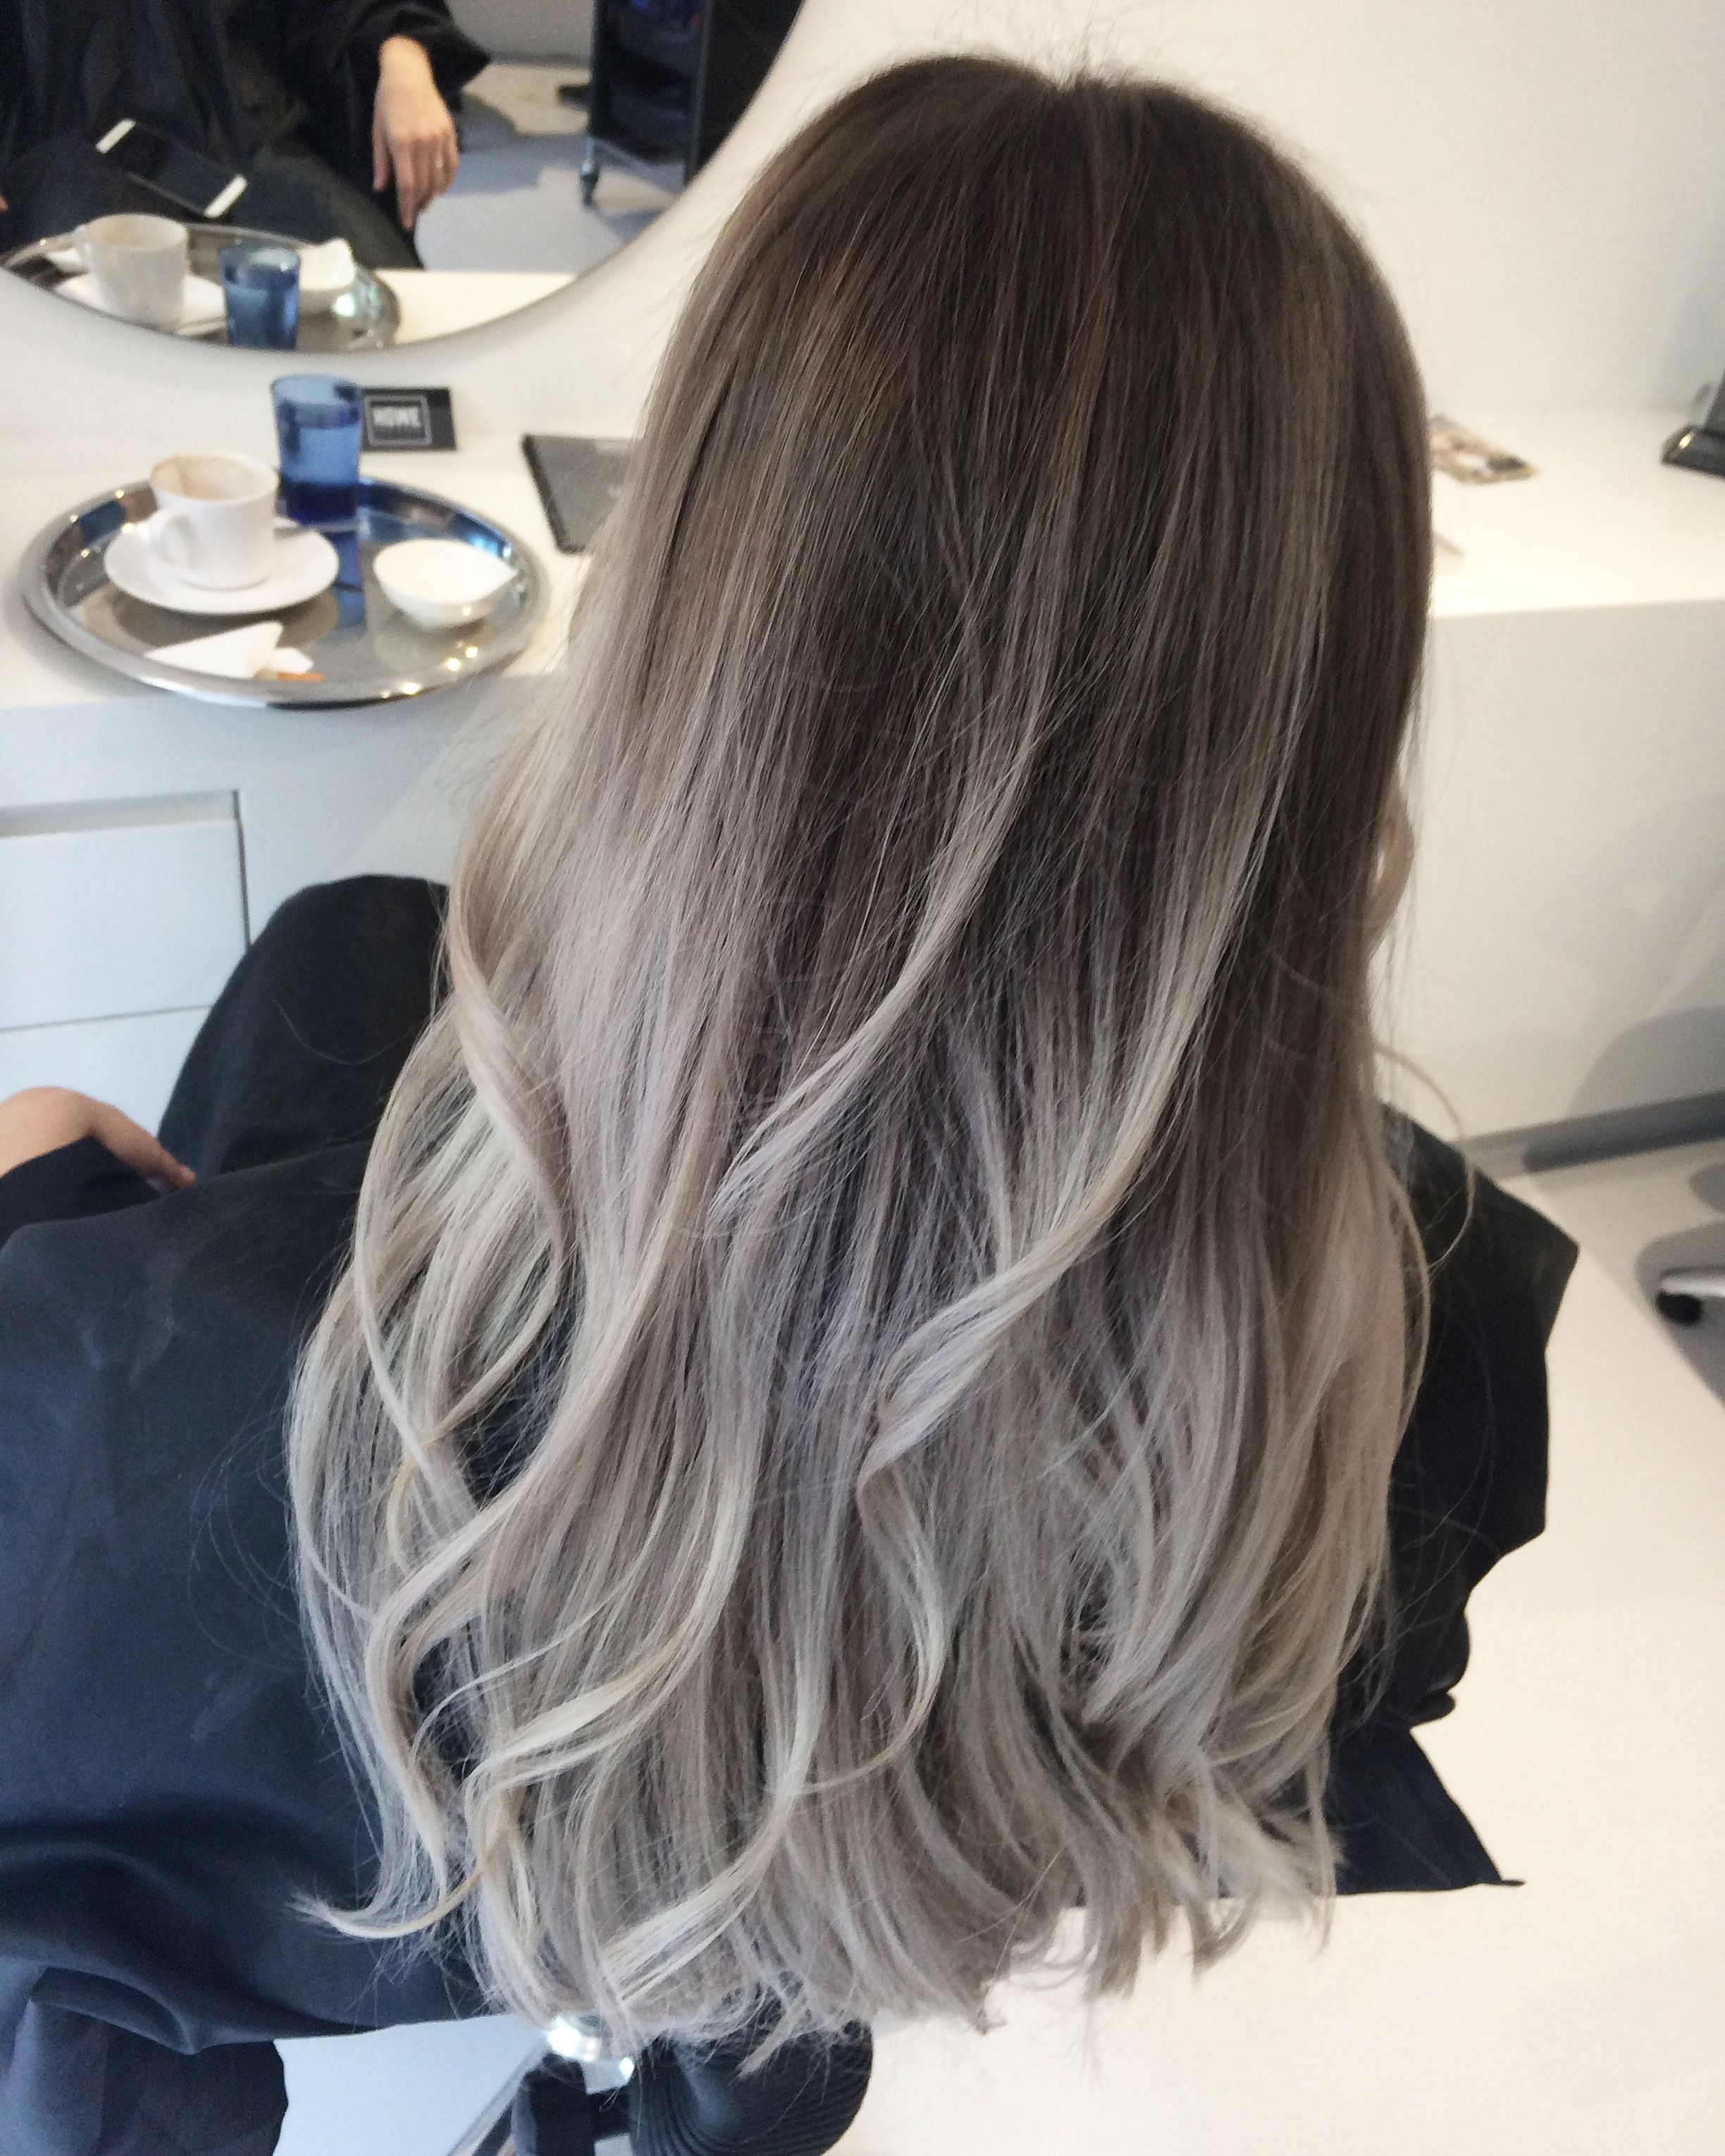 balayage grey gray grey balayage howehair capetown hairsalon ladieshair hair. Black Bedroom Furniture Sets. Home Design Ideas